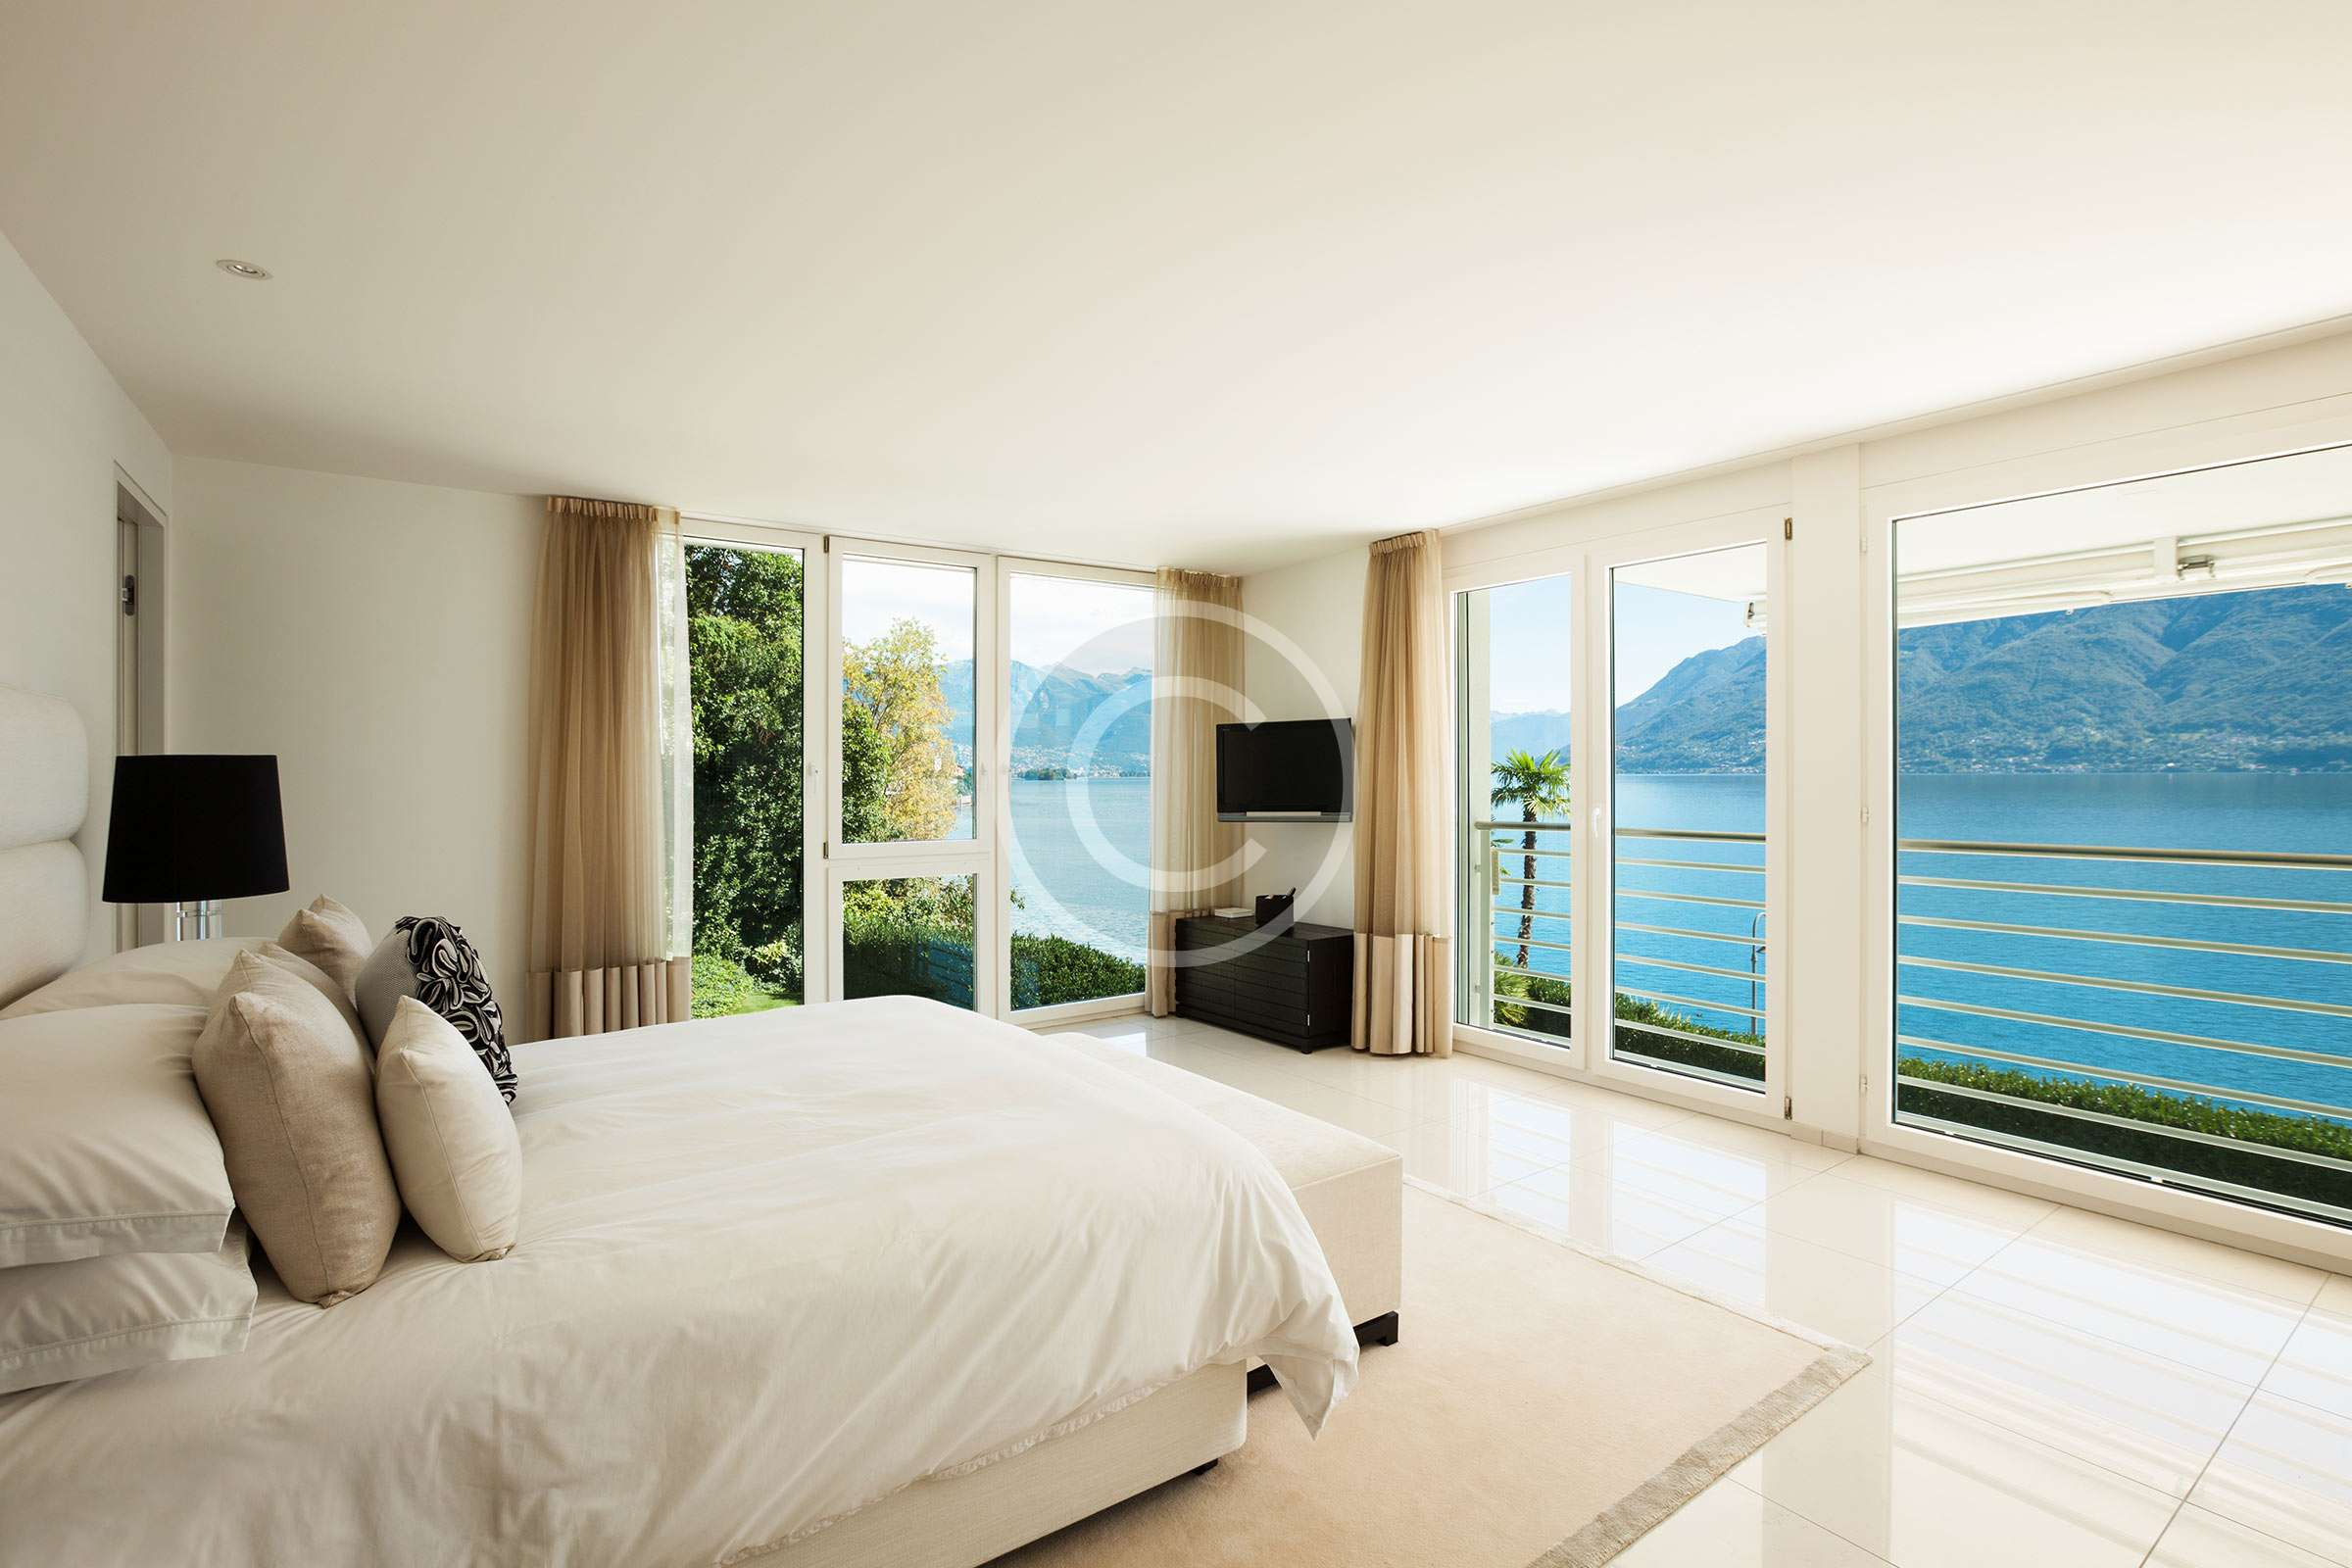 Blackout Curtains: Benefits and Uses